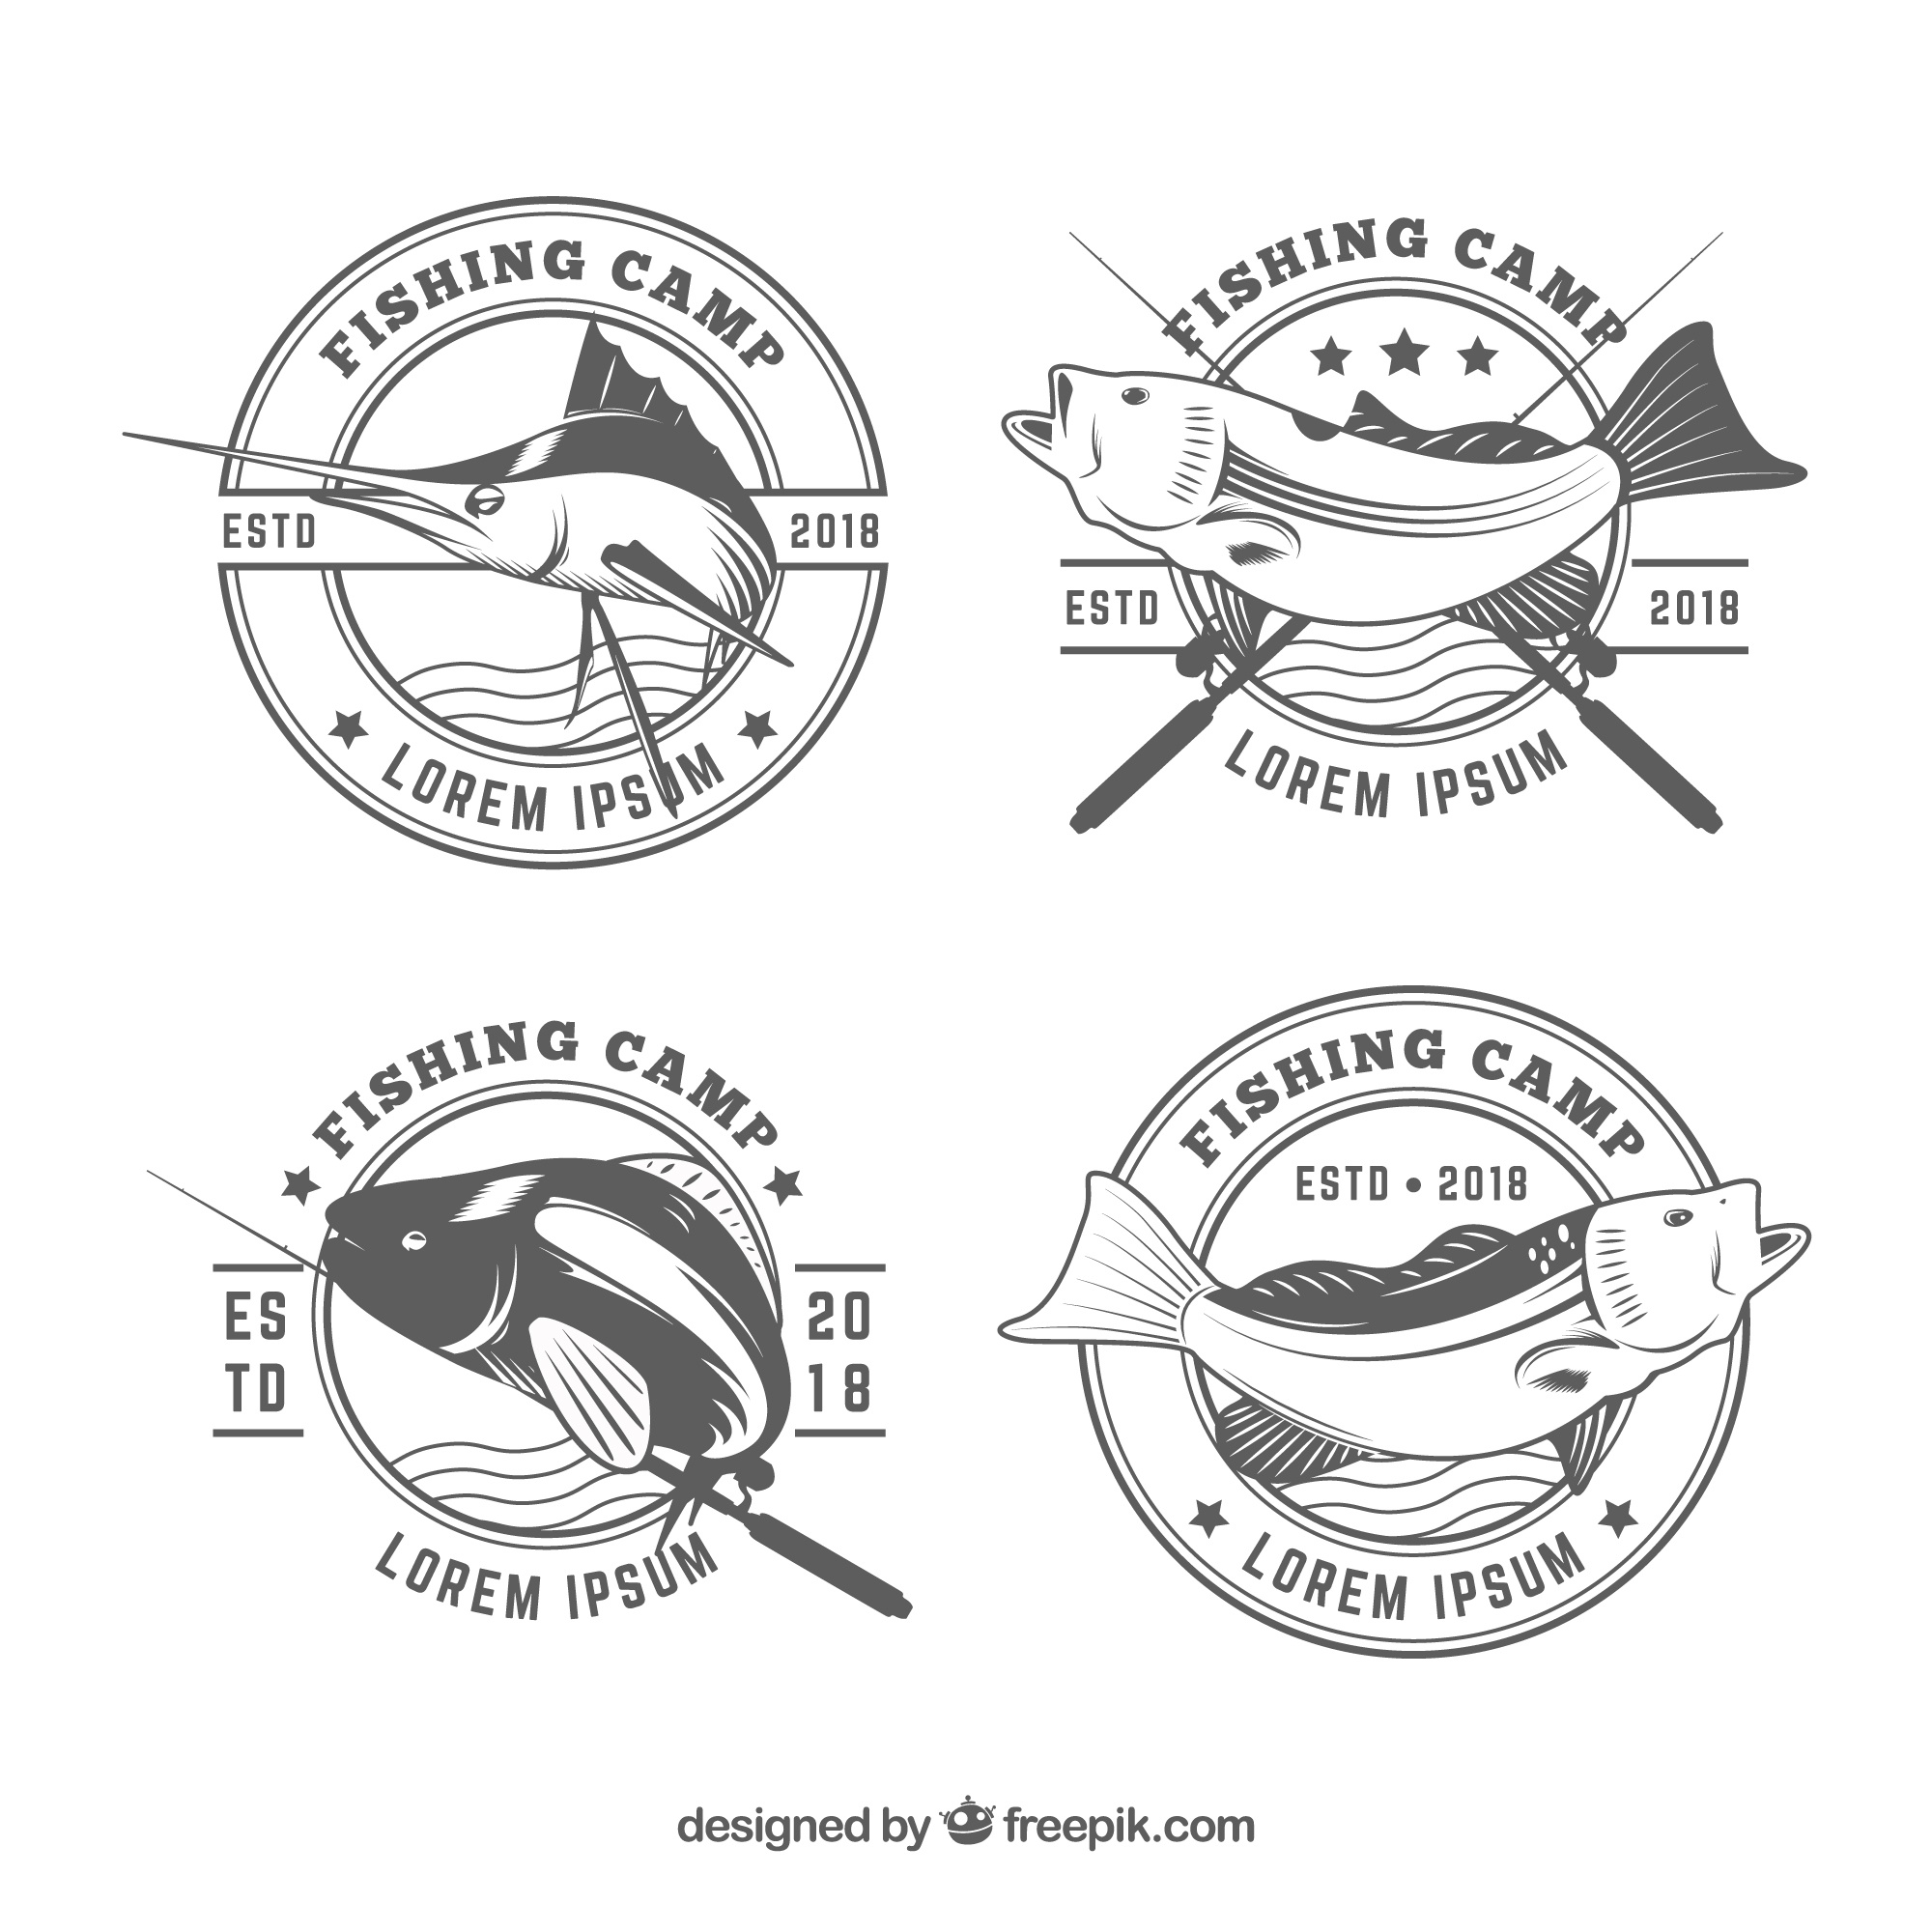 Fish logos collection in black and white